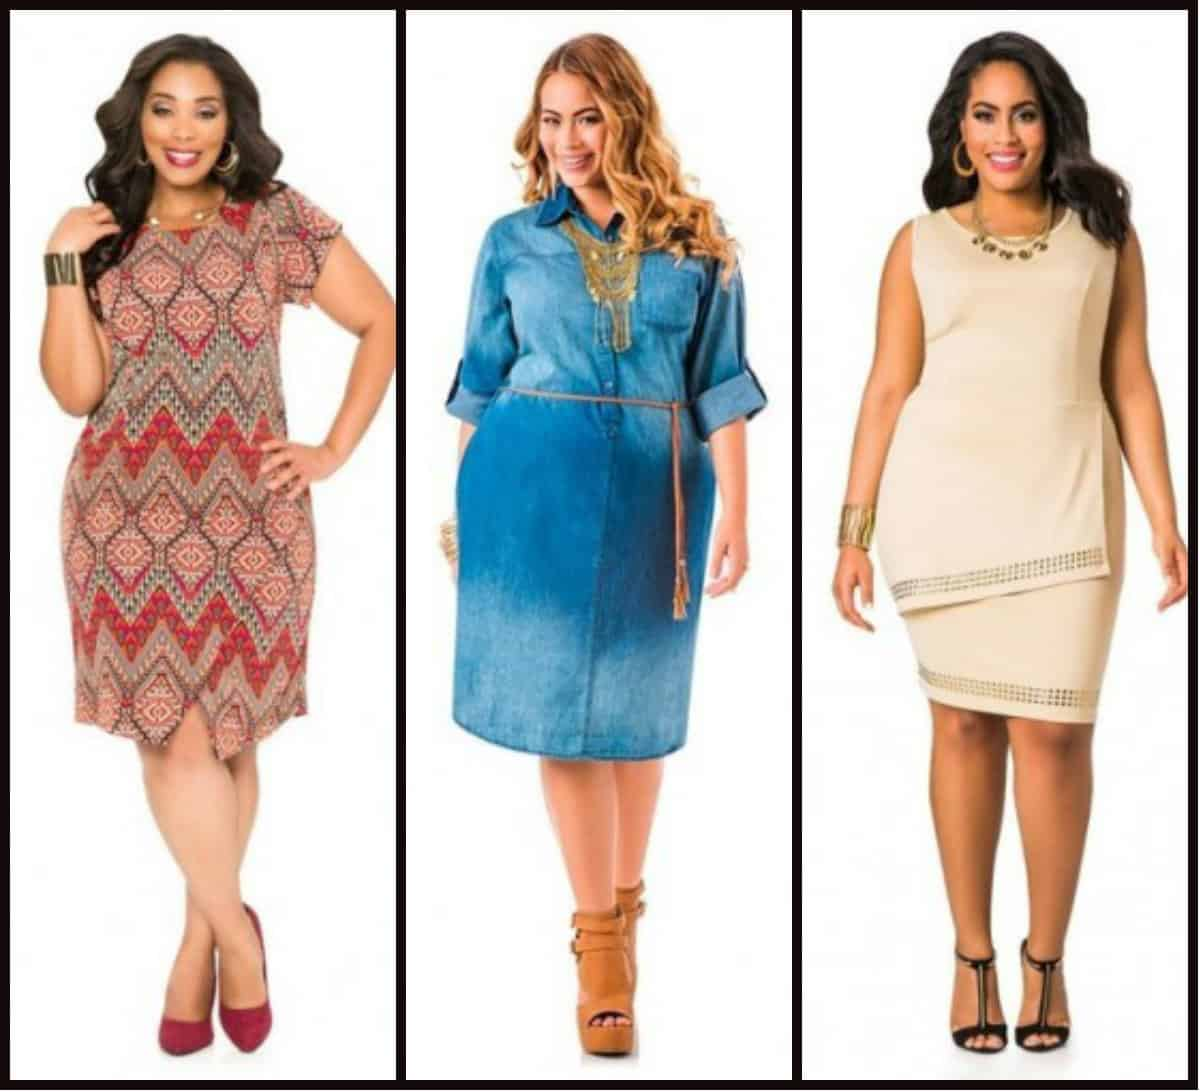 Women's-plus-size-clothing-trends-Spring-Summer-2016